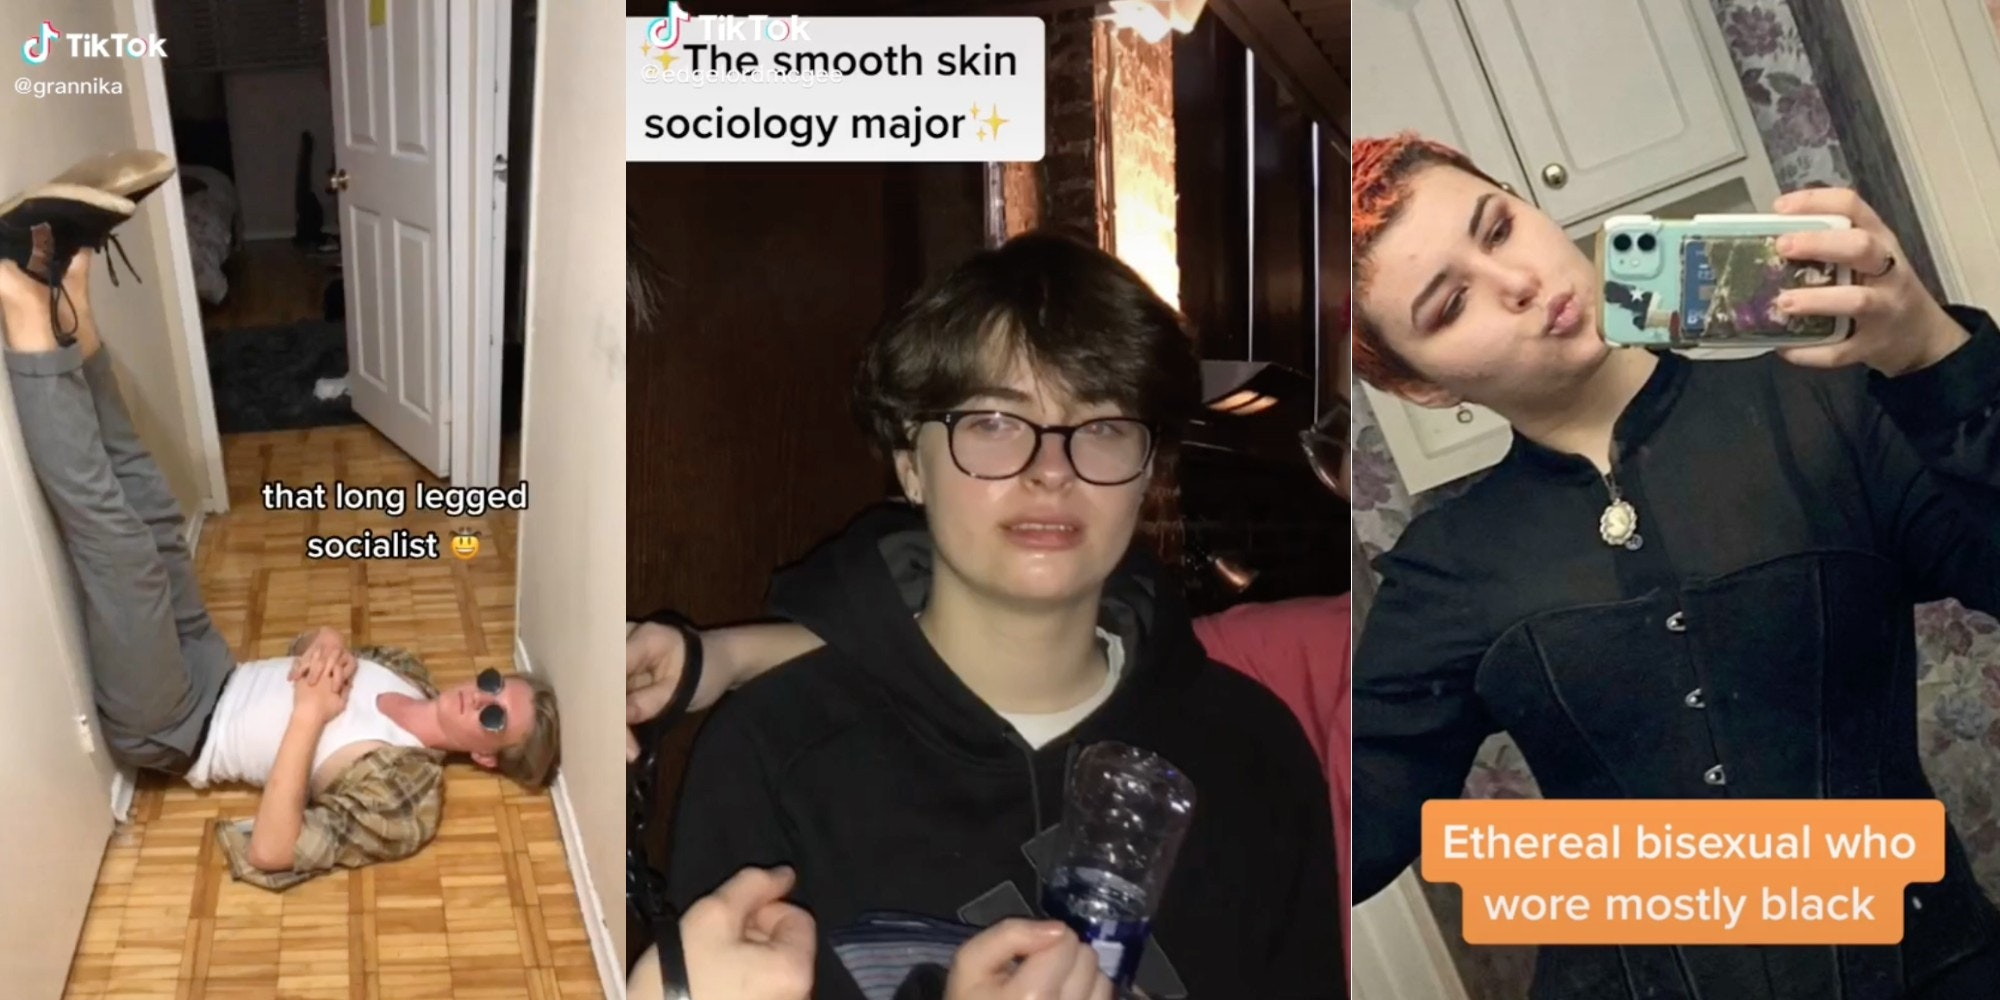 The ethereal bisexual trend on TikTok